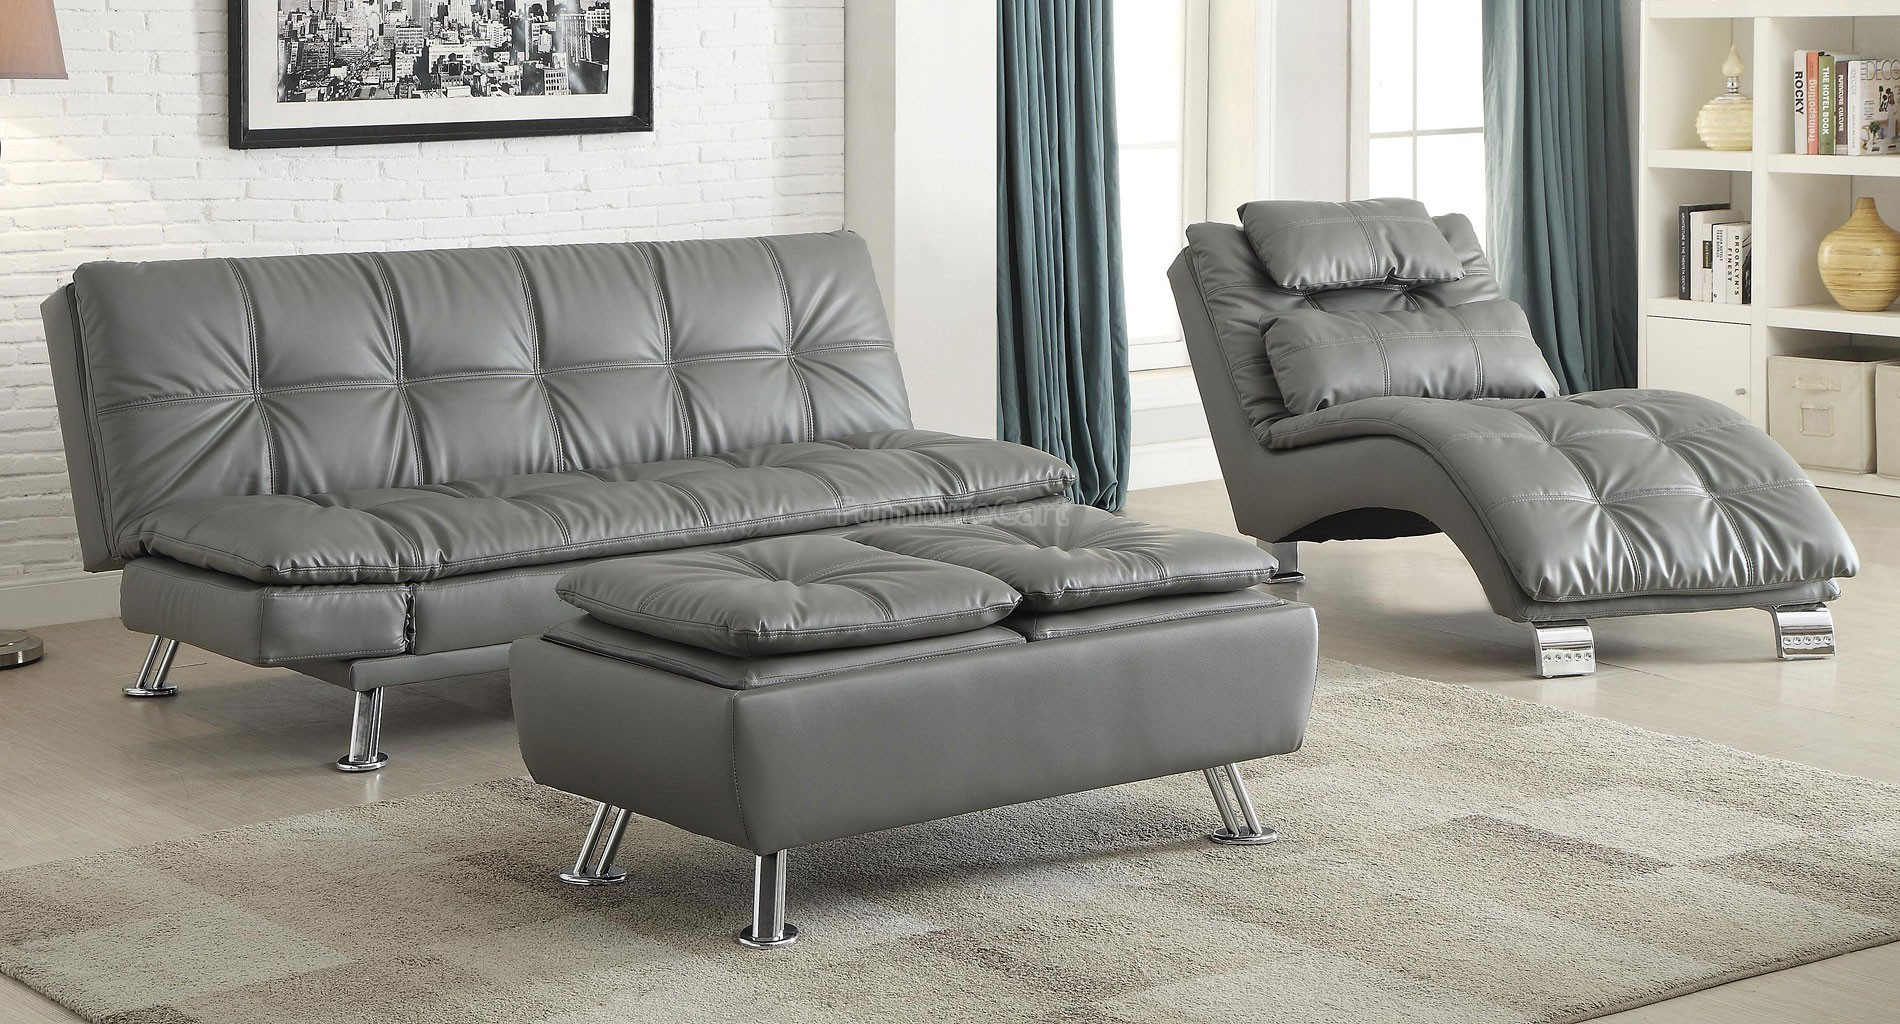 Sofa Bed Grey With Available Matching Chaise And Storage Ottoman Marjen Of Chicago